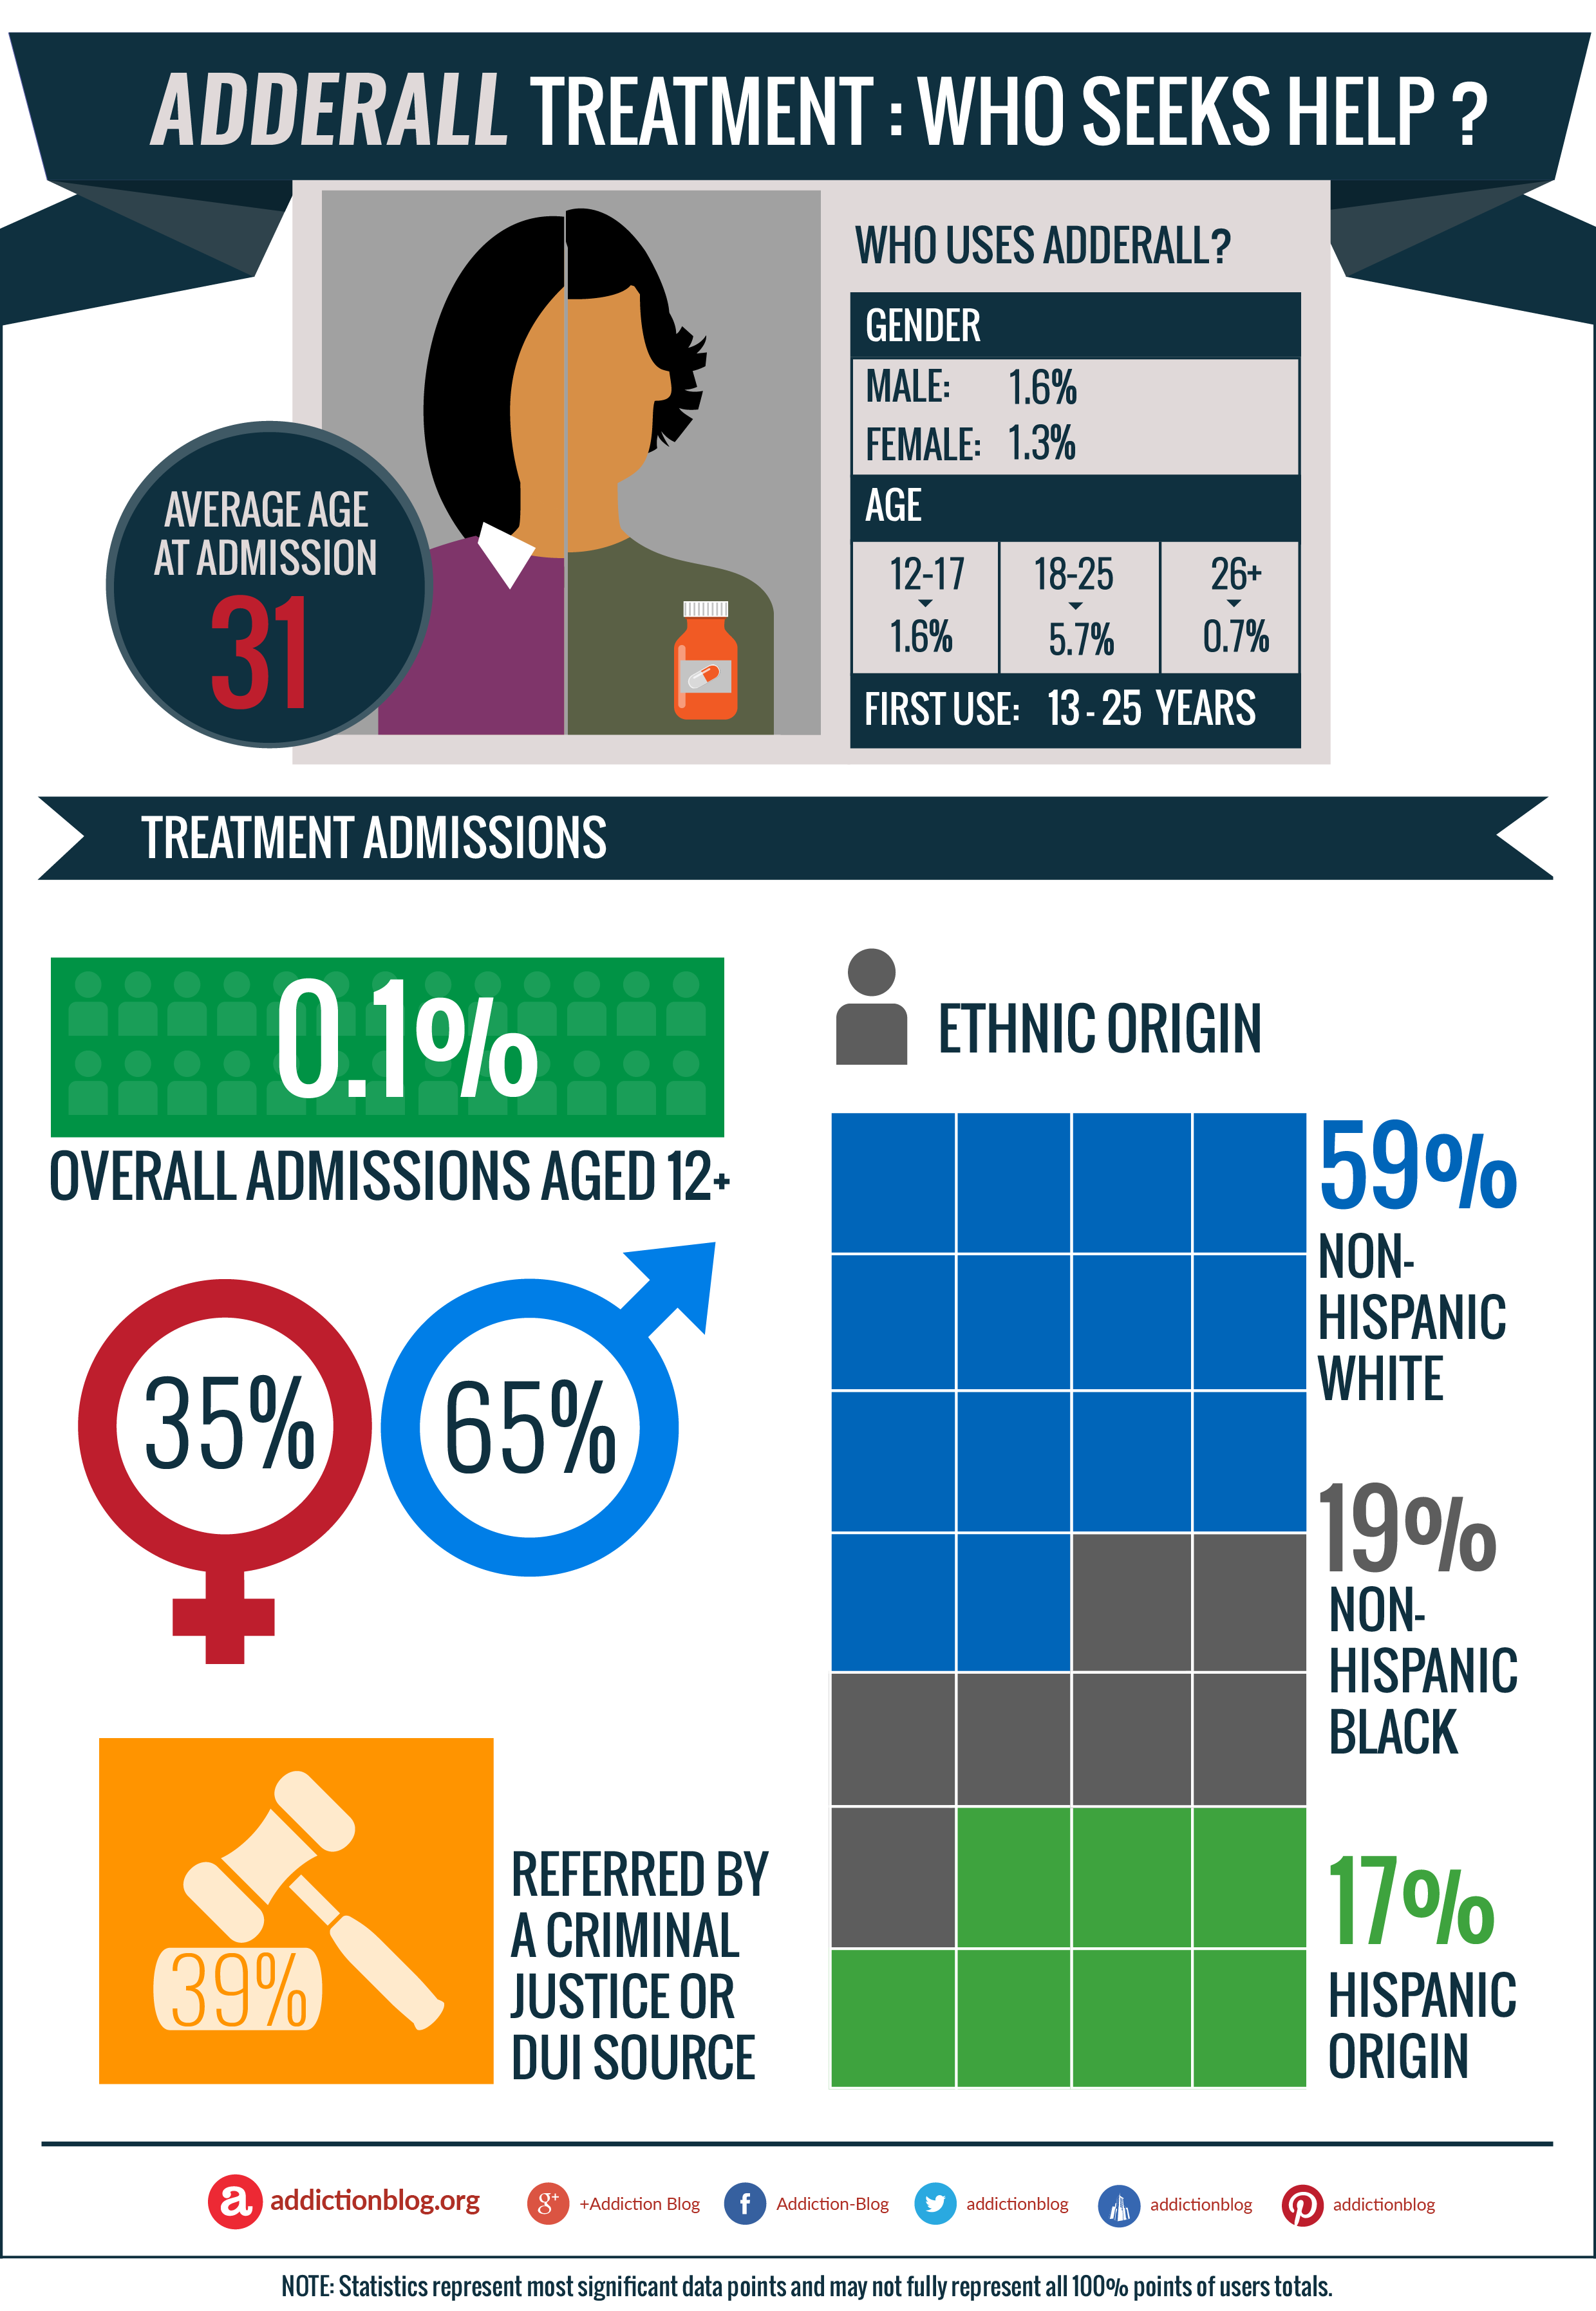 Adderall treatment: Who seeks help for Adderall addiction? (INFOGRAPHIC)